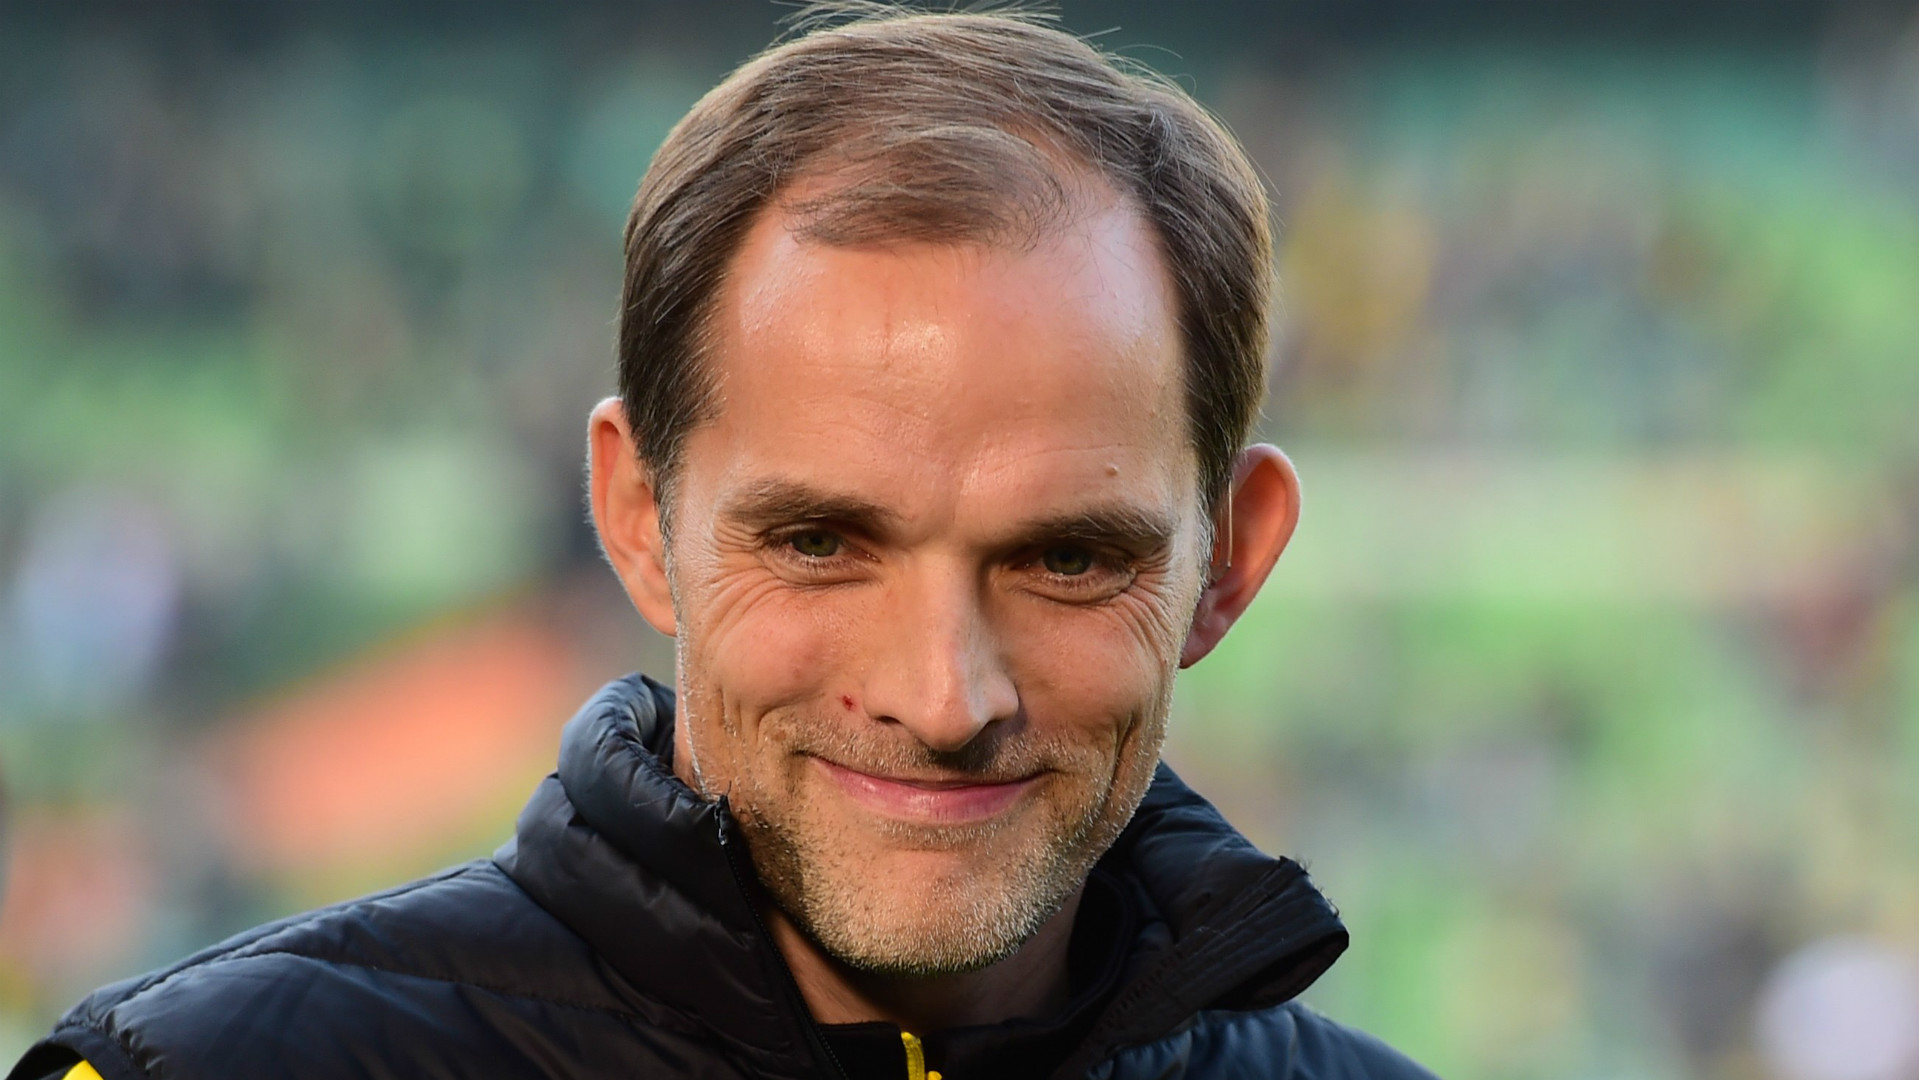 Borussia Dortmund sacks Thomas Tuchel as coach